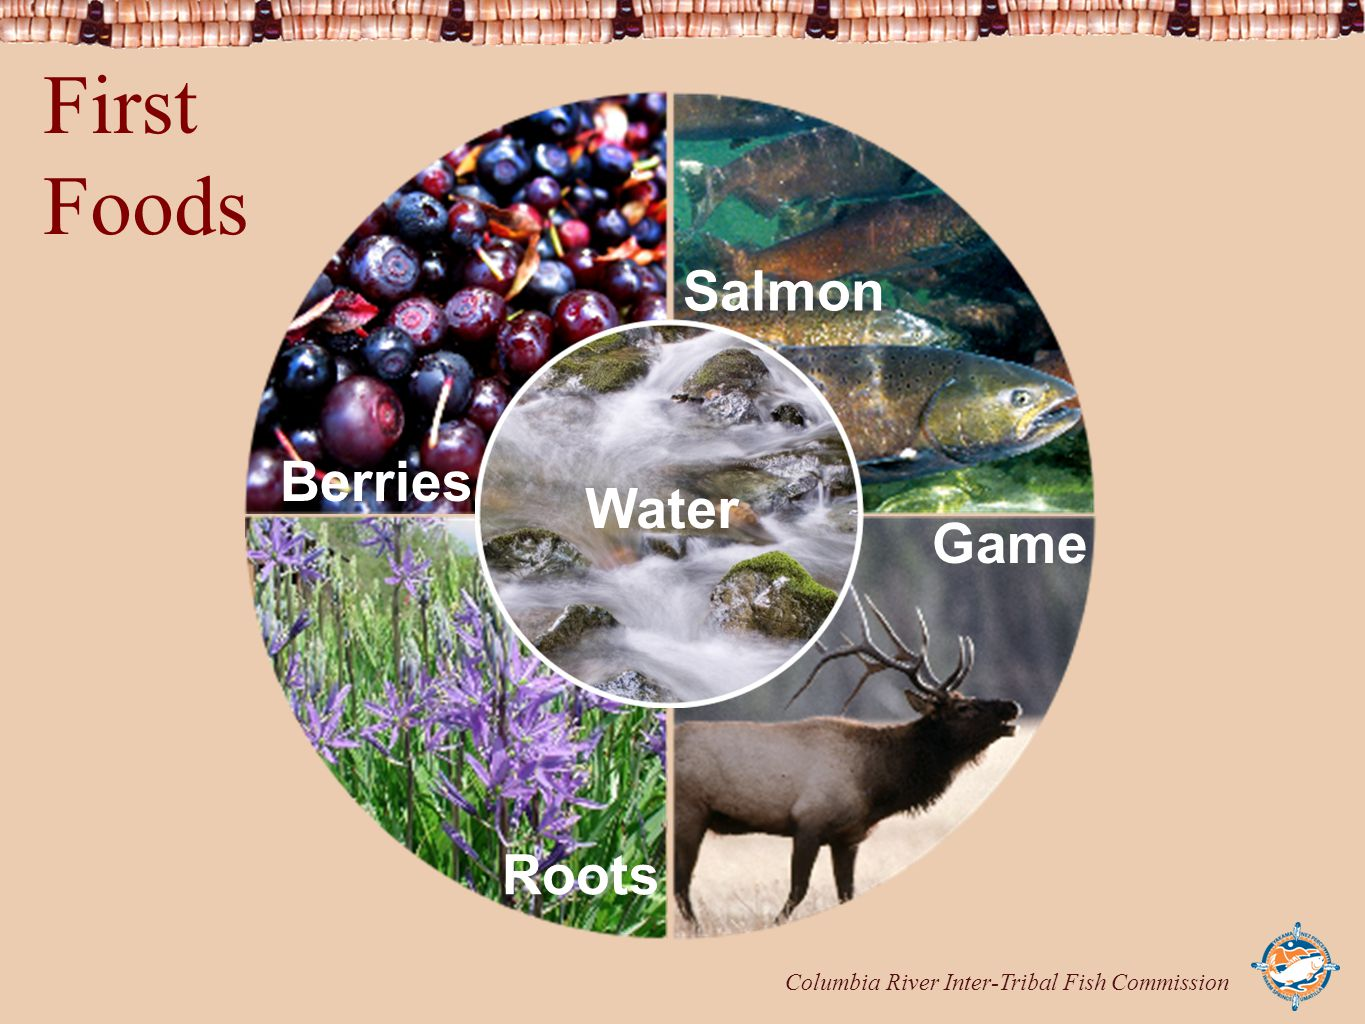 Columbia River Inter-Tribal Fish Commission Water Salmon Game Roots Berries First Foods